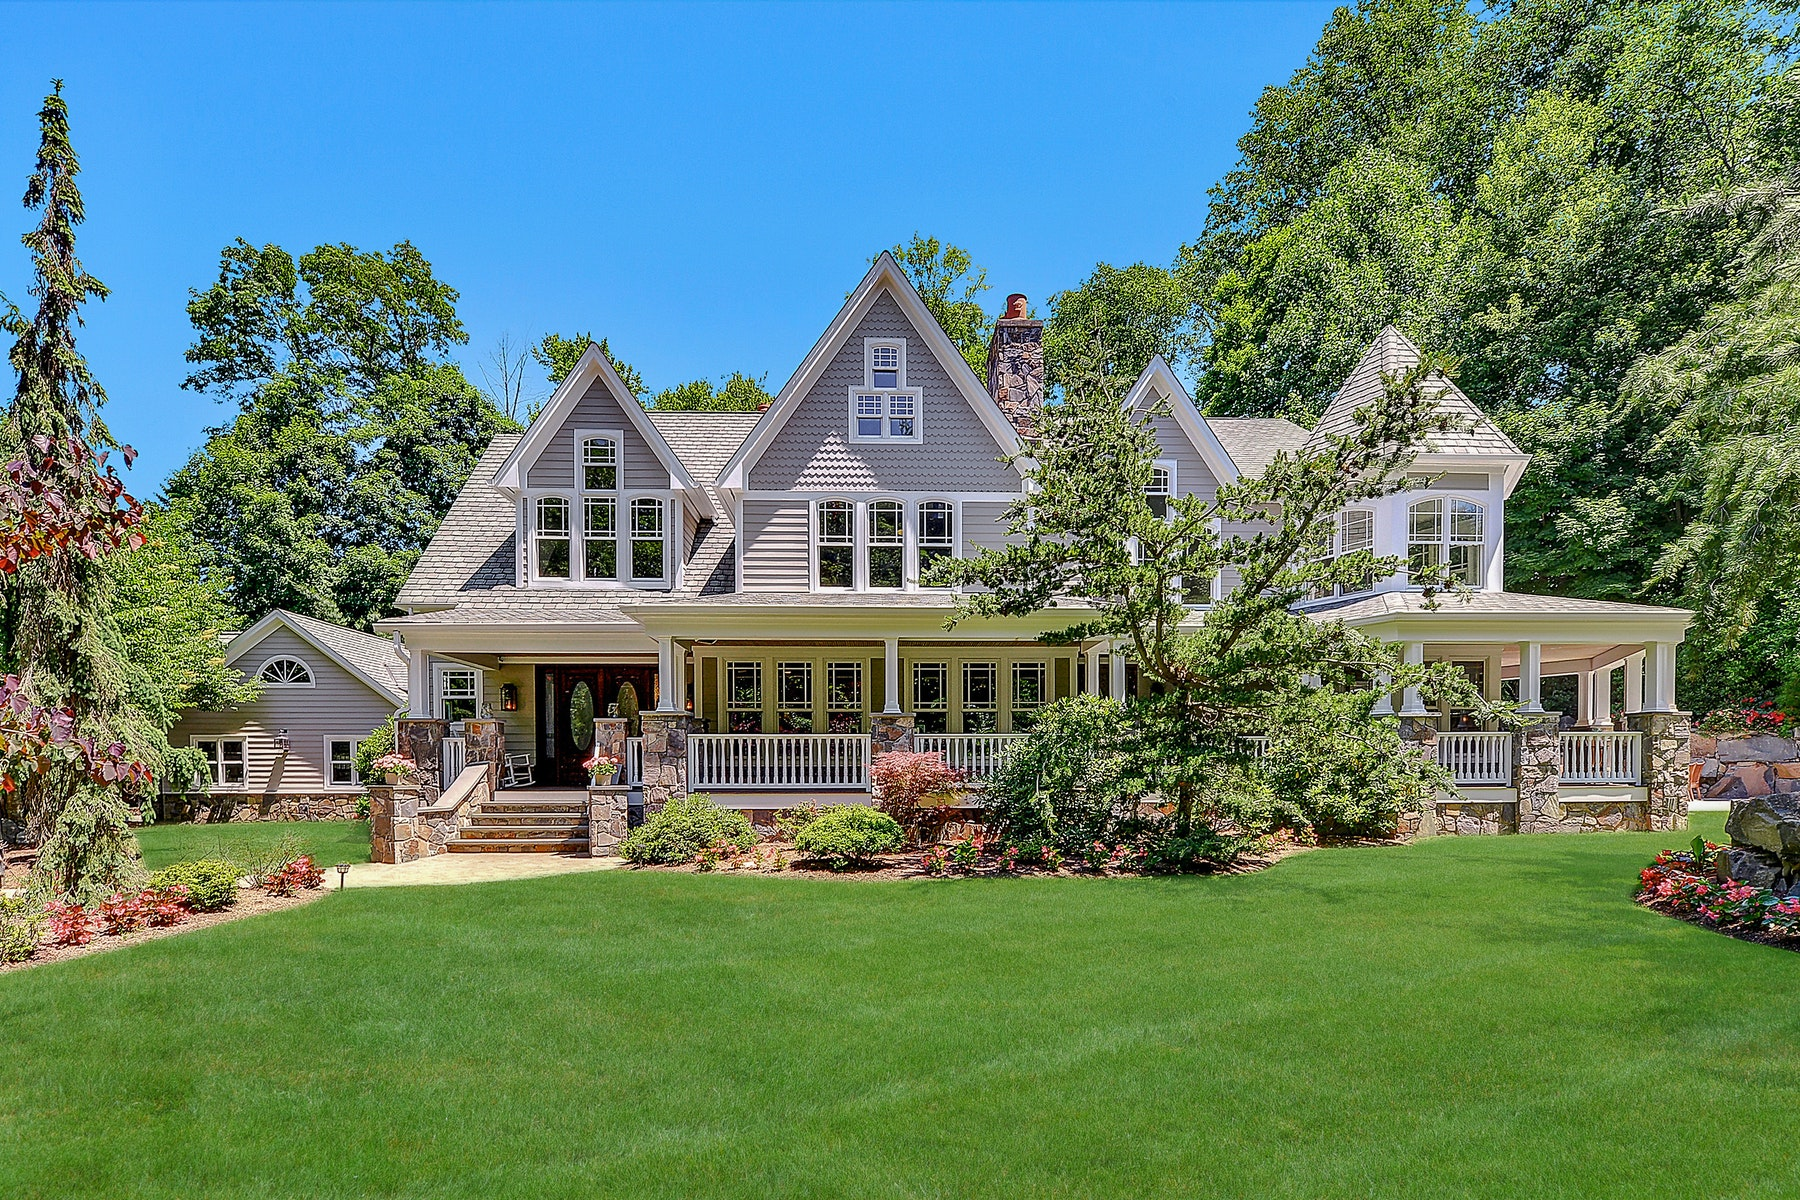 Single Family Homes for Sale at STUNNING COUNTRY FARMHOUSE 284 E Saddle River Rd., Upper Saddle River, New Jersey 07458 United States